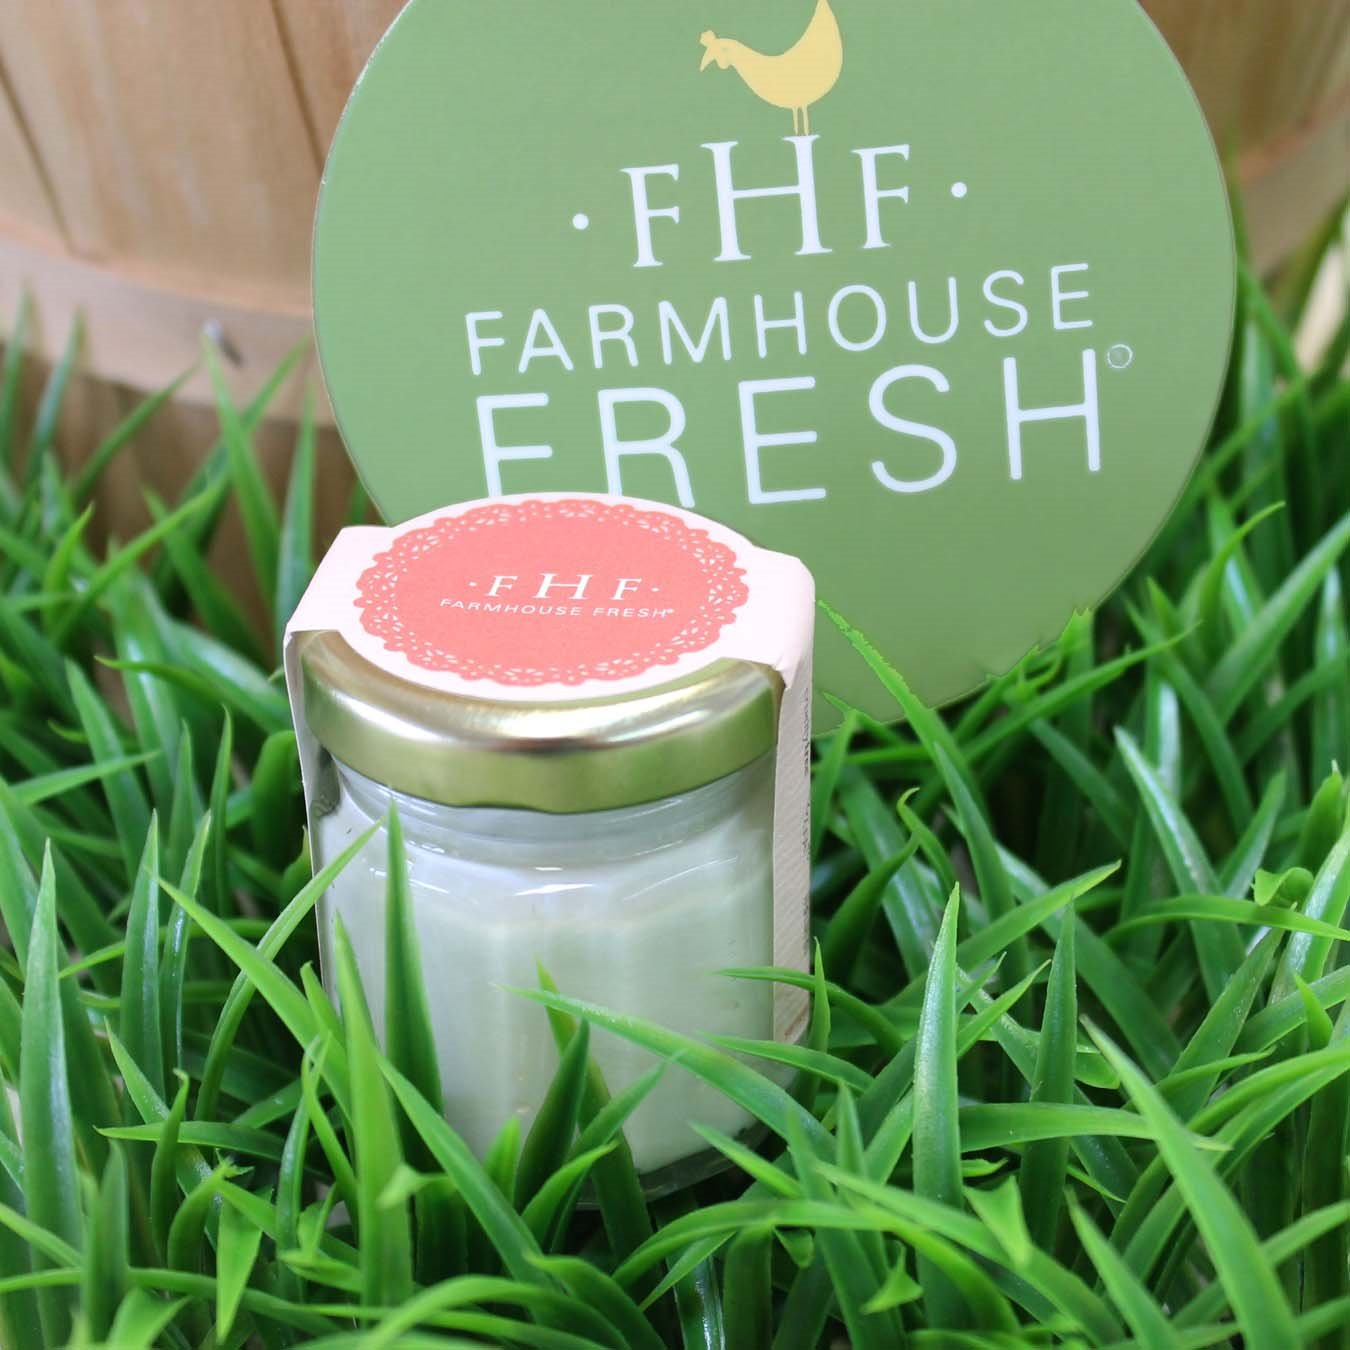 Farmhouse Fresh Products